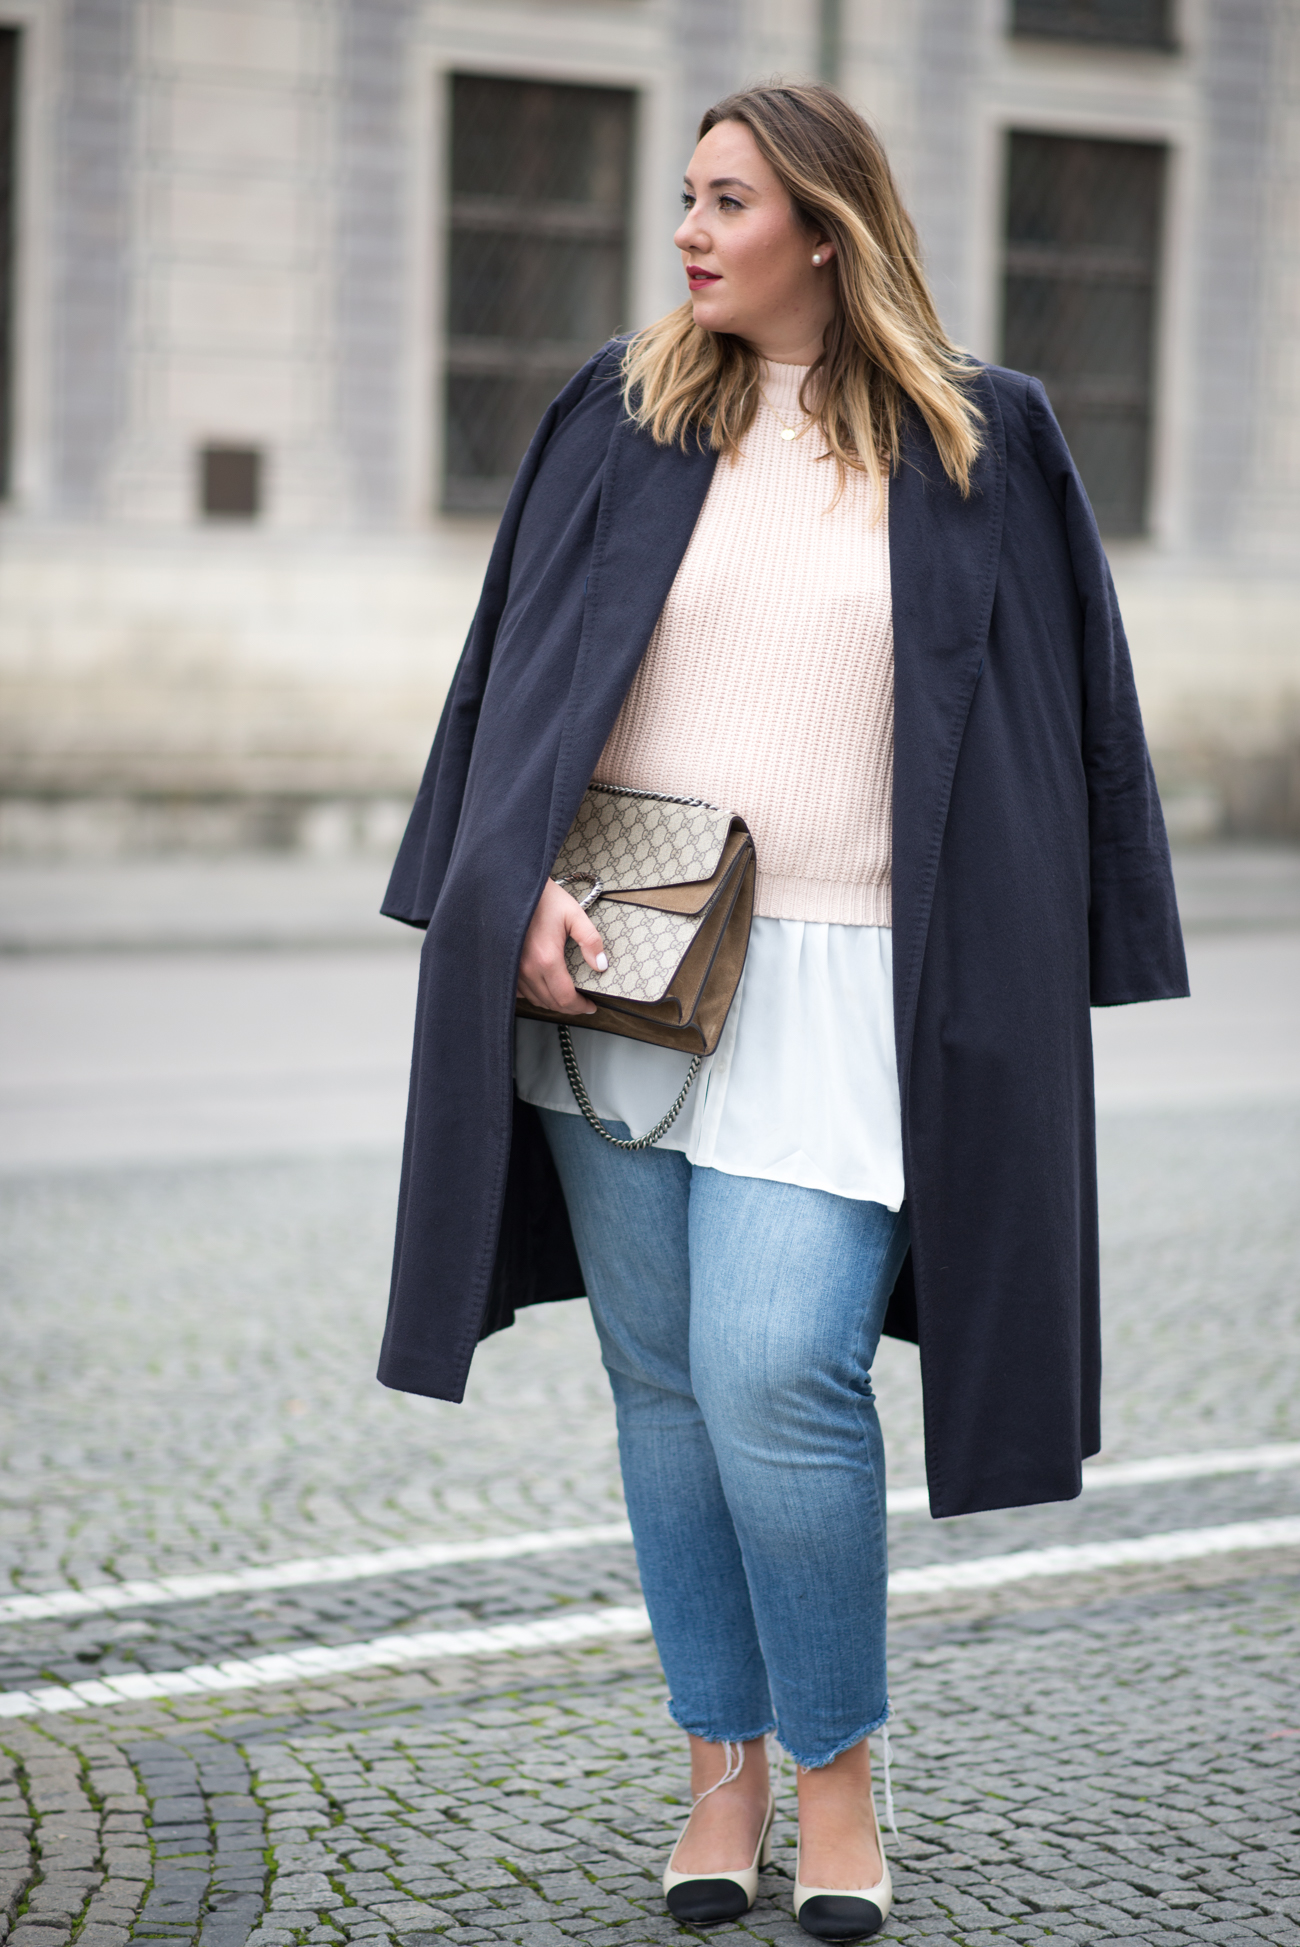 the-skinny-and-the-curvy-one_fashion_plussize_marina-rinaldi_chanel_jeans_blue-jeans_curve-outfit-inspo_muenchen-blogger_daily-outfit_plus-size-blog_plus-size-blogger-deutschland_-22-von-23